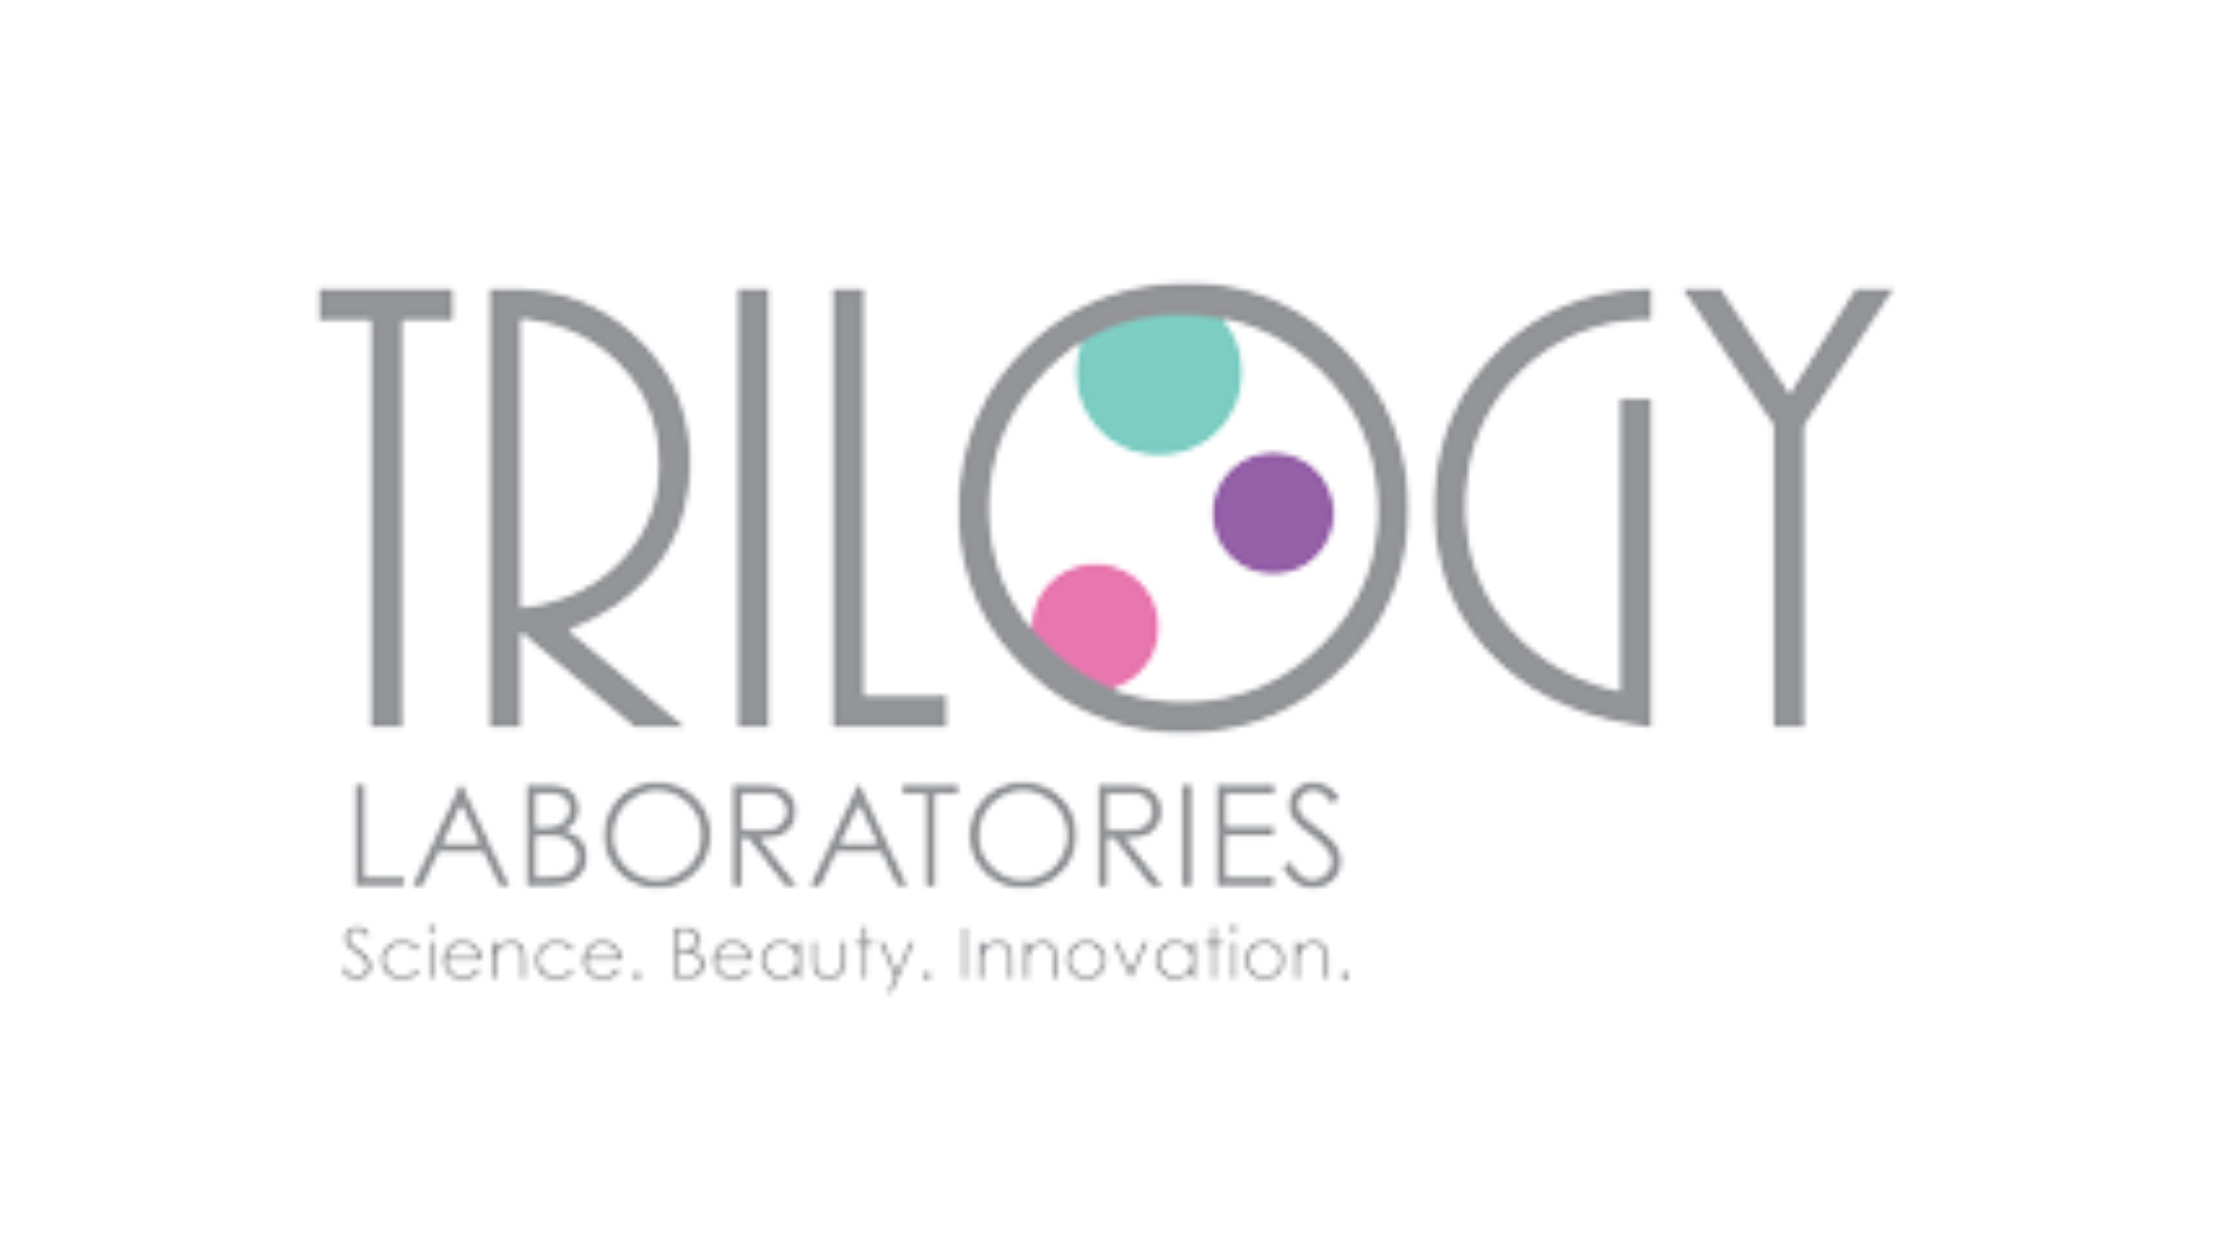 Trilogy Laboratories launches Screen Saver serum to shield skin from blue light damage